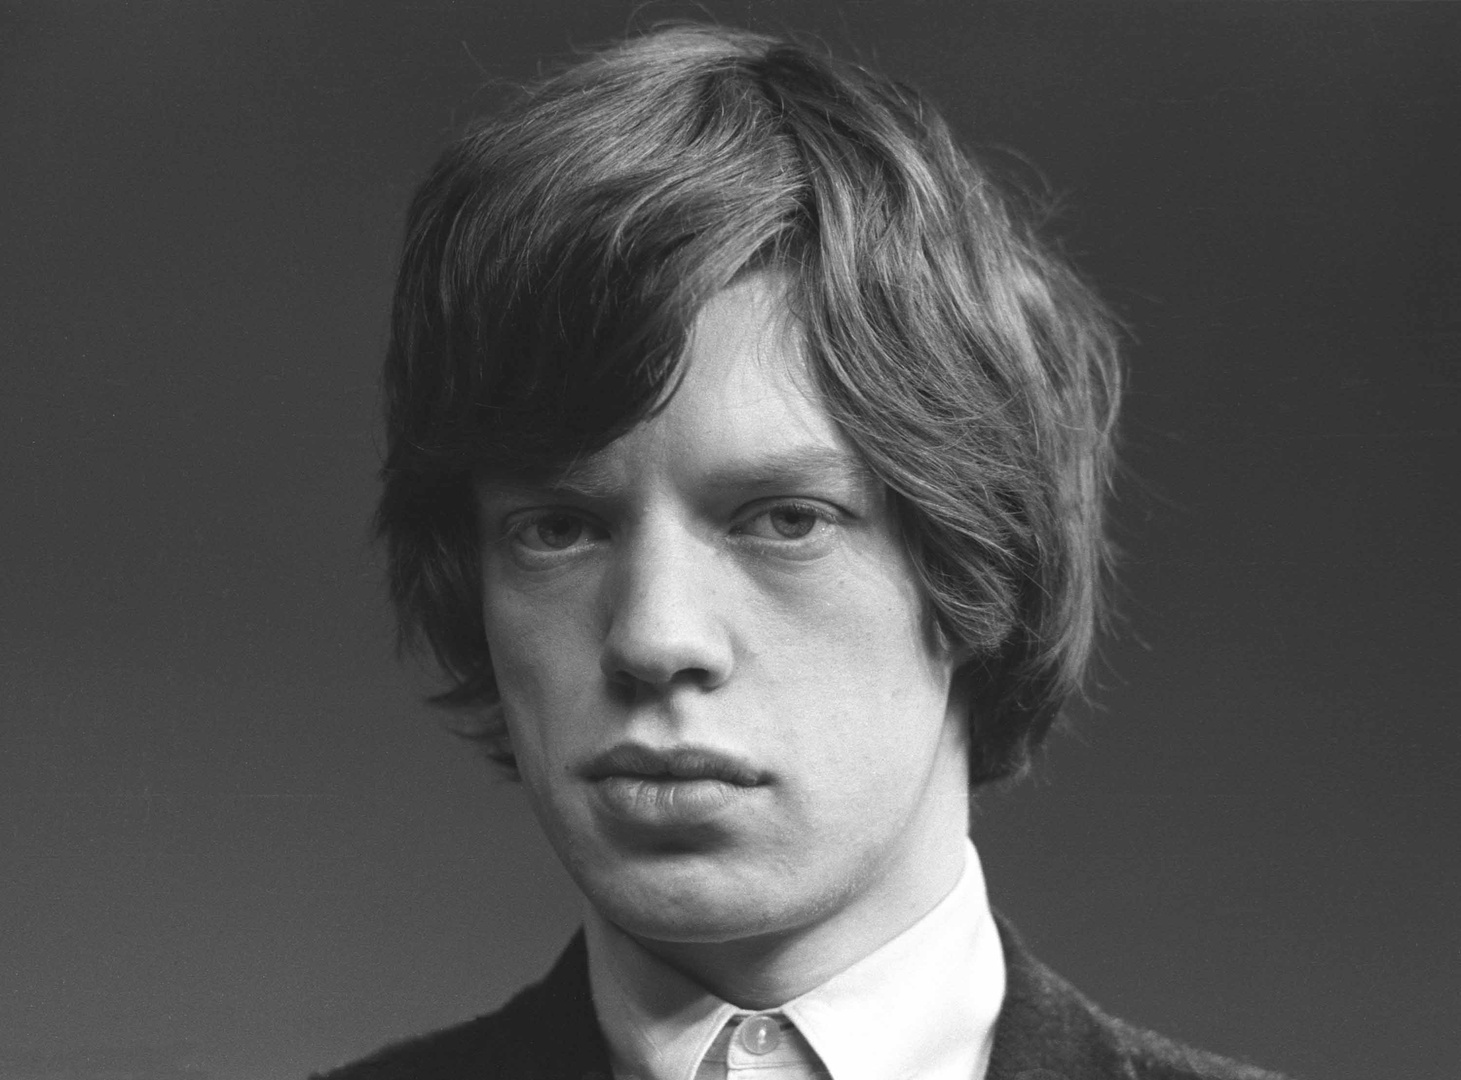 Mick Jagger, Close Up, London, 1964